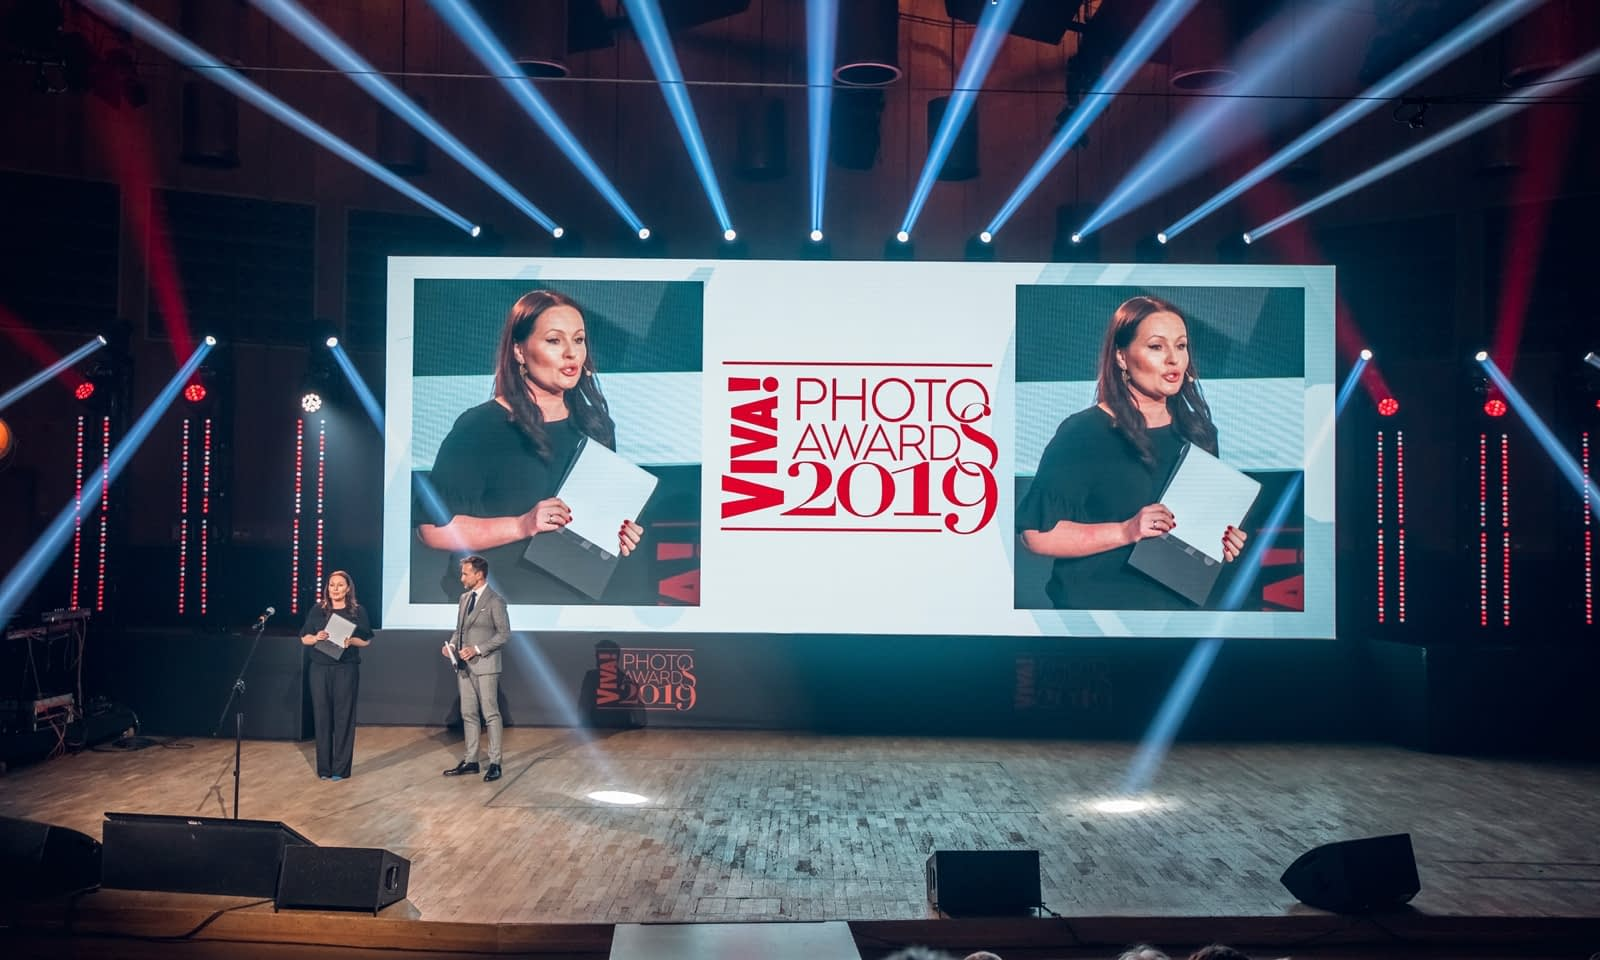 Viva! Photo Awards 2019 Brill AV Media